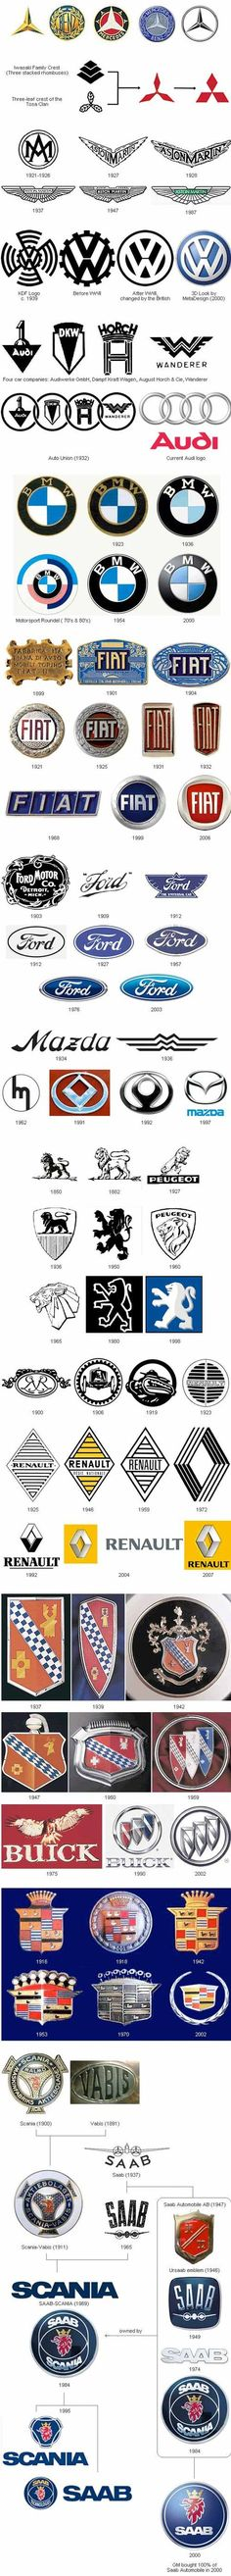 Evolution of auto logos Car Badges, Car Logos, Auto Logos, Evolution, Car Brands, All Cars, Car Manufacturers, Amazing Cars, Awesome